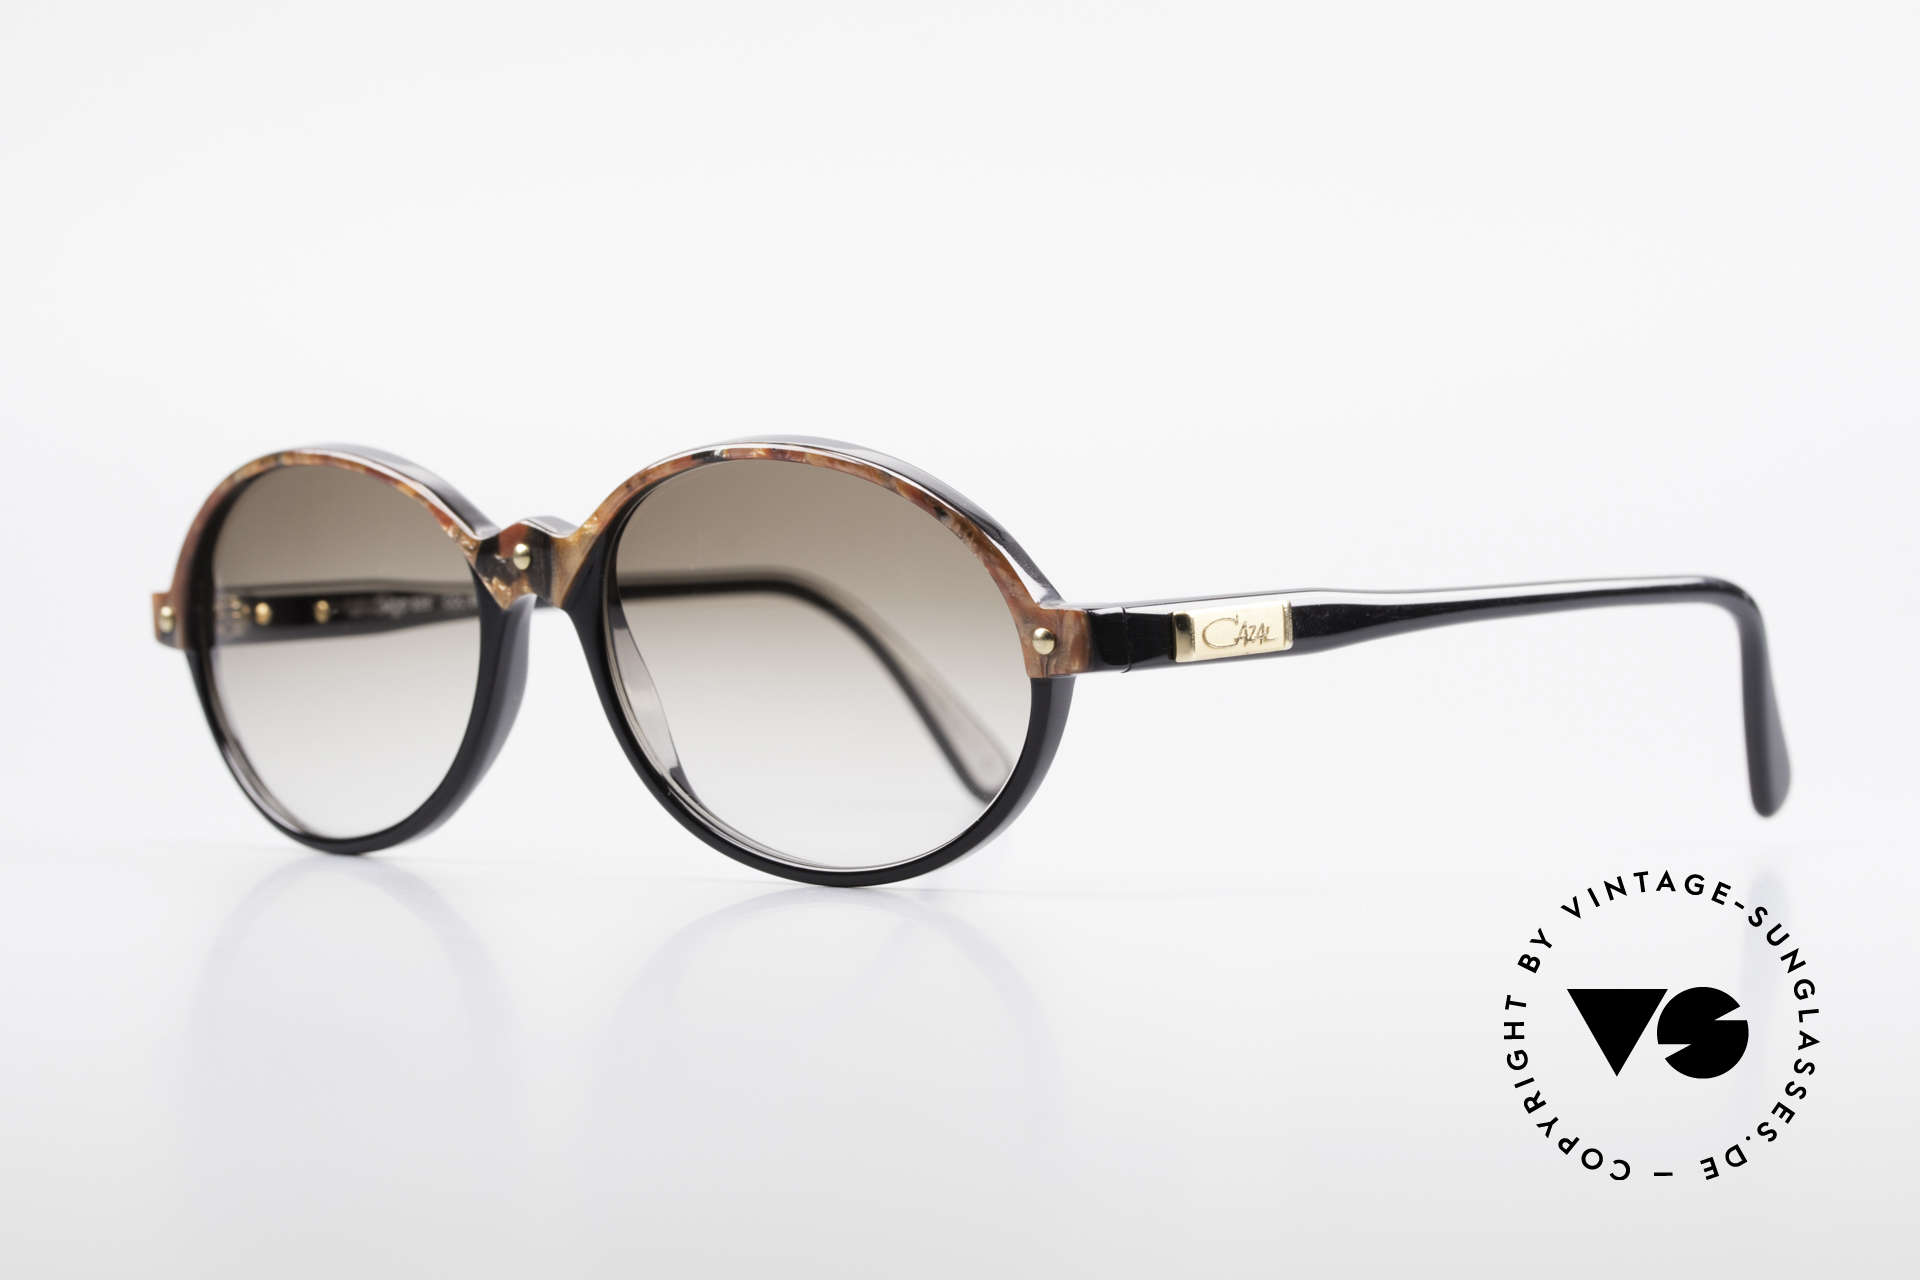 Cazal 328 Oval Vintage Sunglasses 90's, an old West Germany Cazal vintage ORIGINAL, Made for Women